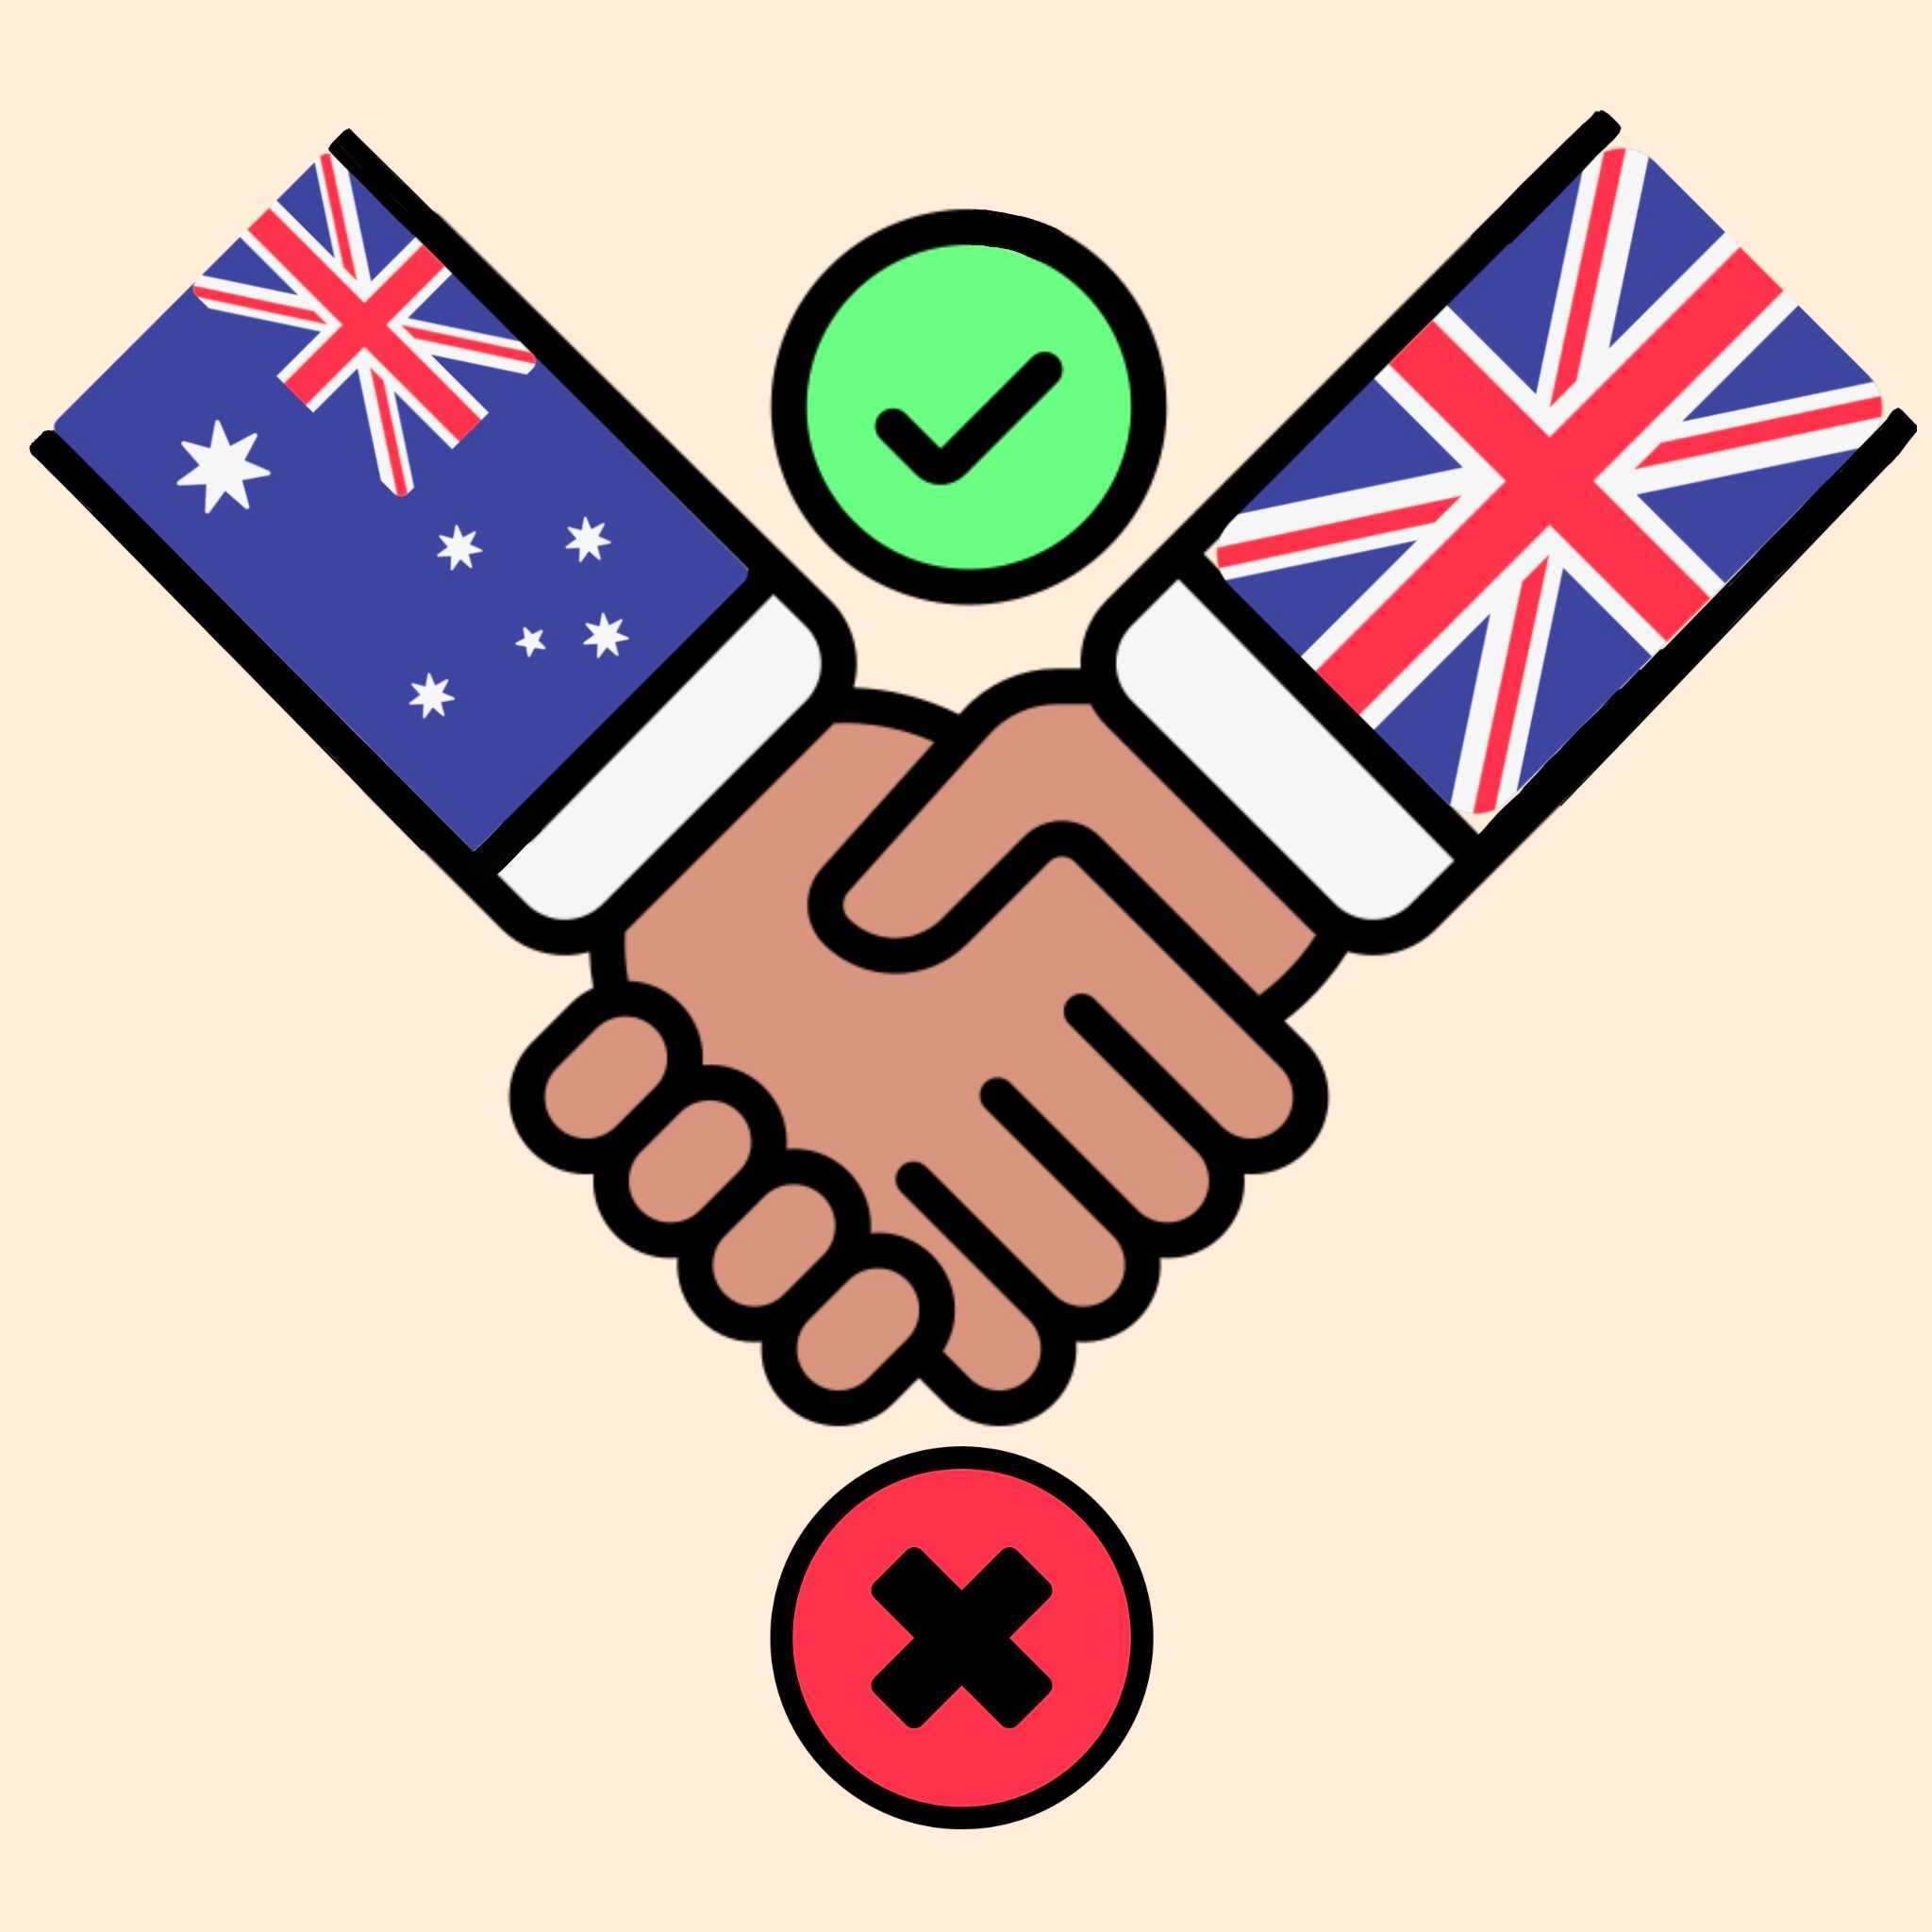 Deal or No Deal?: UK government split over proposed trade deal with Australia